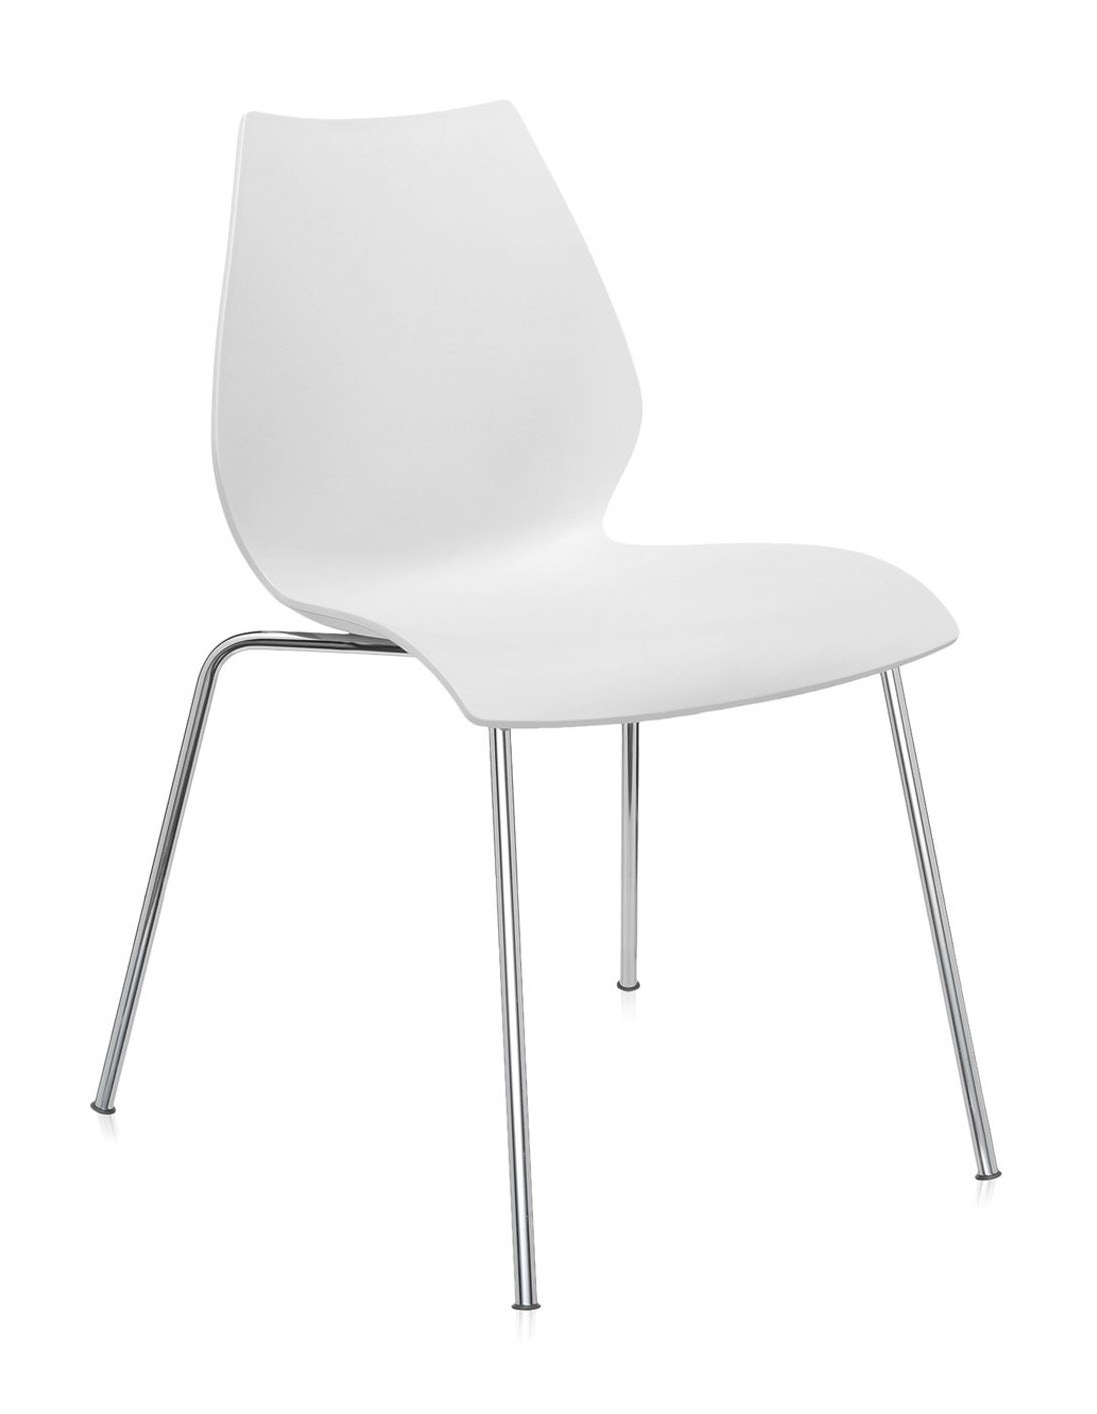 Kartell Maui Self-Extinguishing Chair